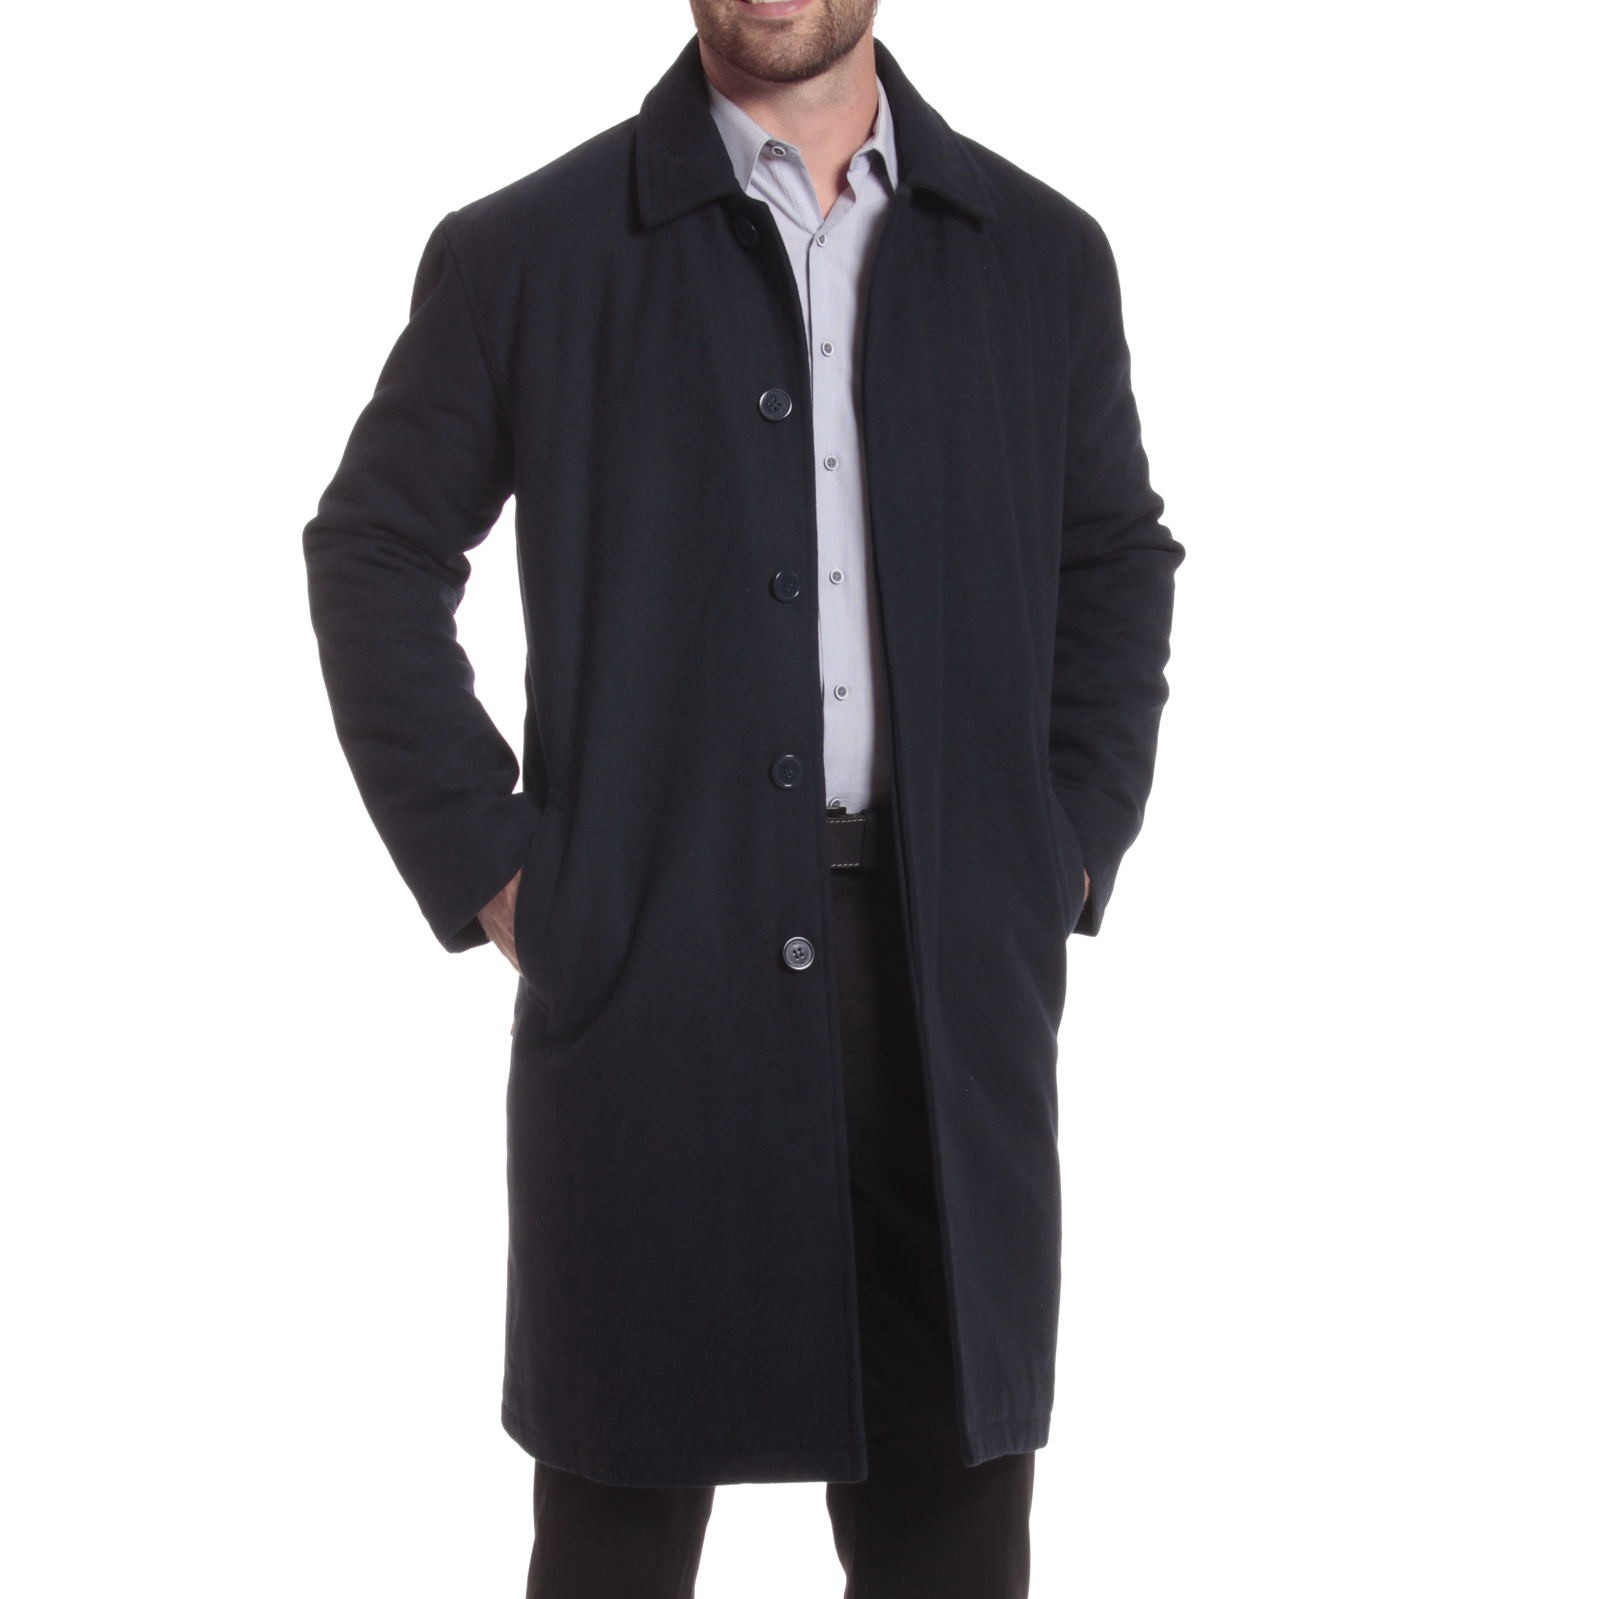 Alpine-Swiss-Mens-Zach-Knee-Length-Jacket-Top-Coat-Trench-Wool-Blend-Overcoat thumbnail 45